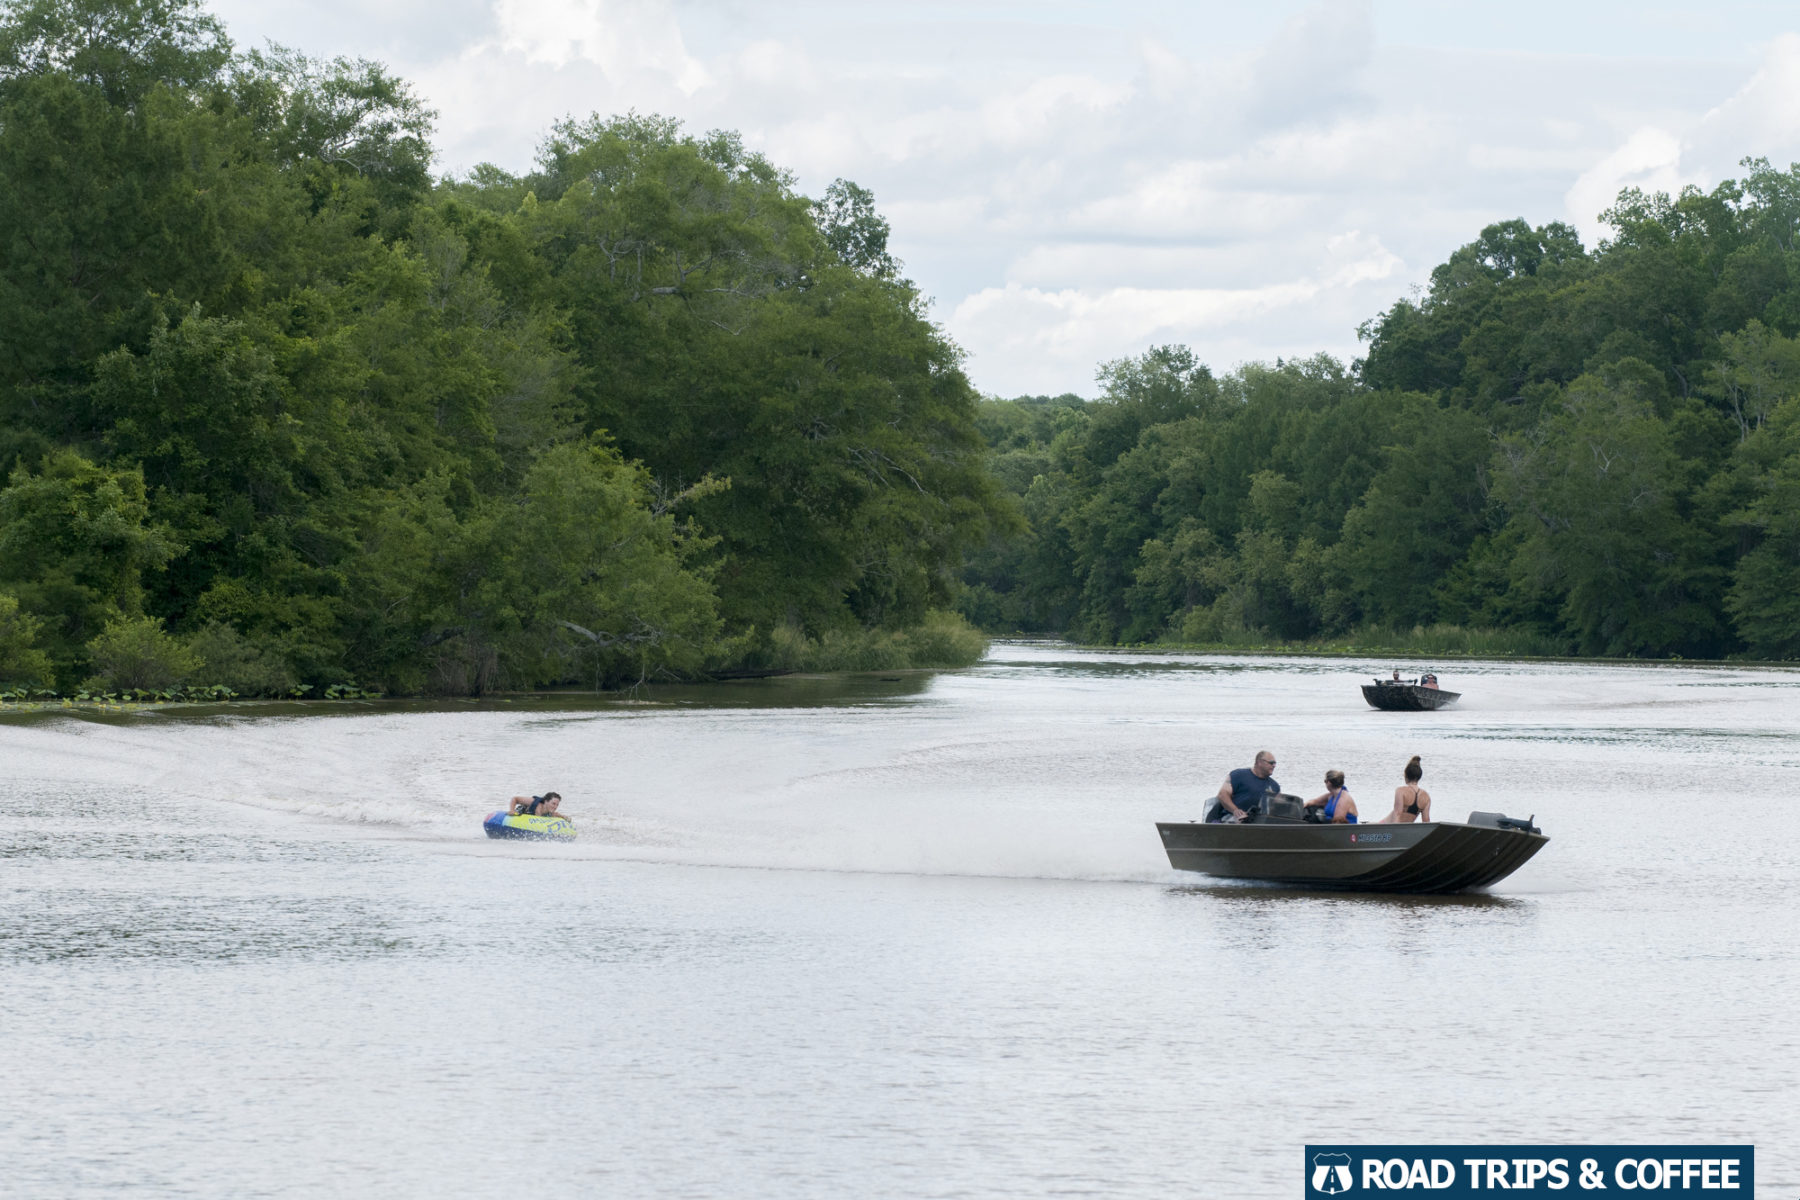 Boaters enjoy a day of river rafting on the Pearl River near the River Bend Overlook on the Natchez Trace Parkway in Mississippi